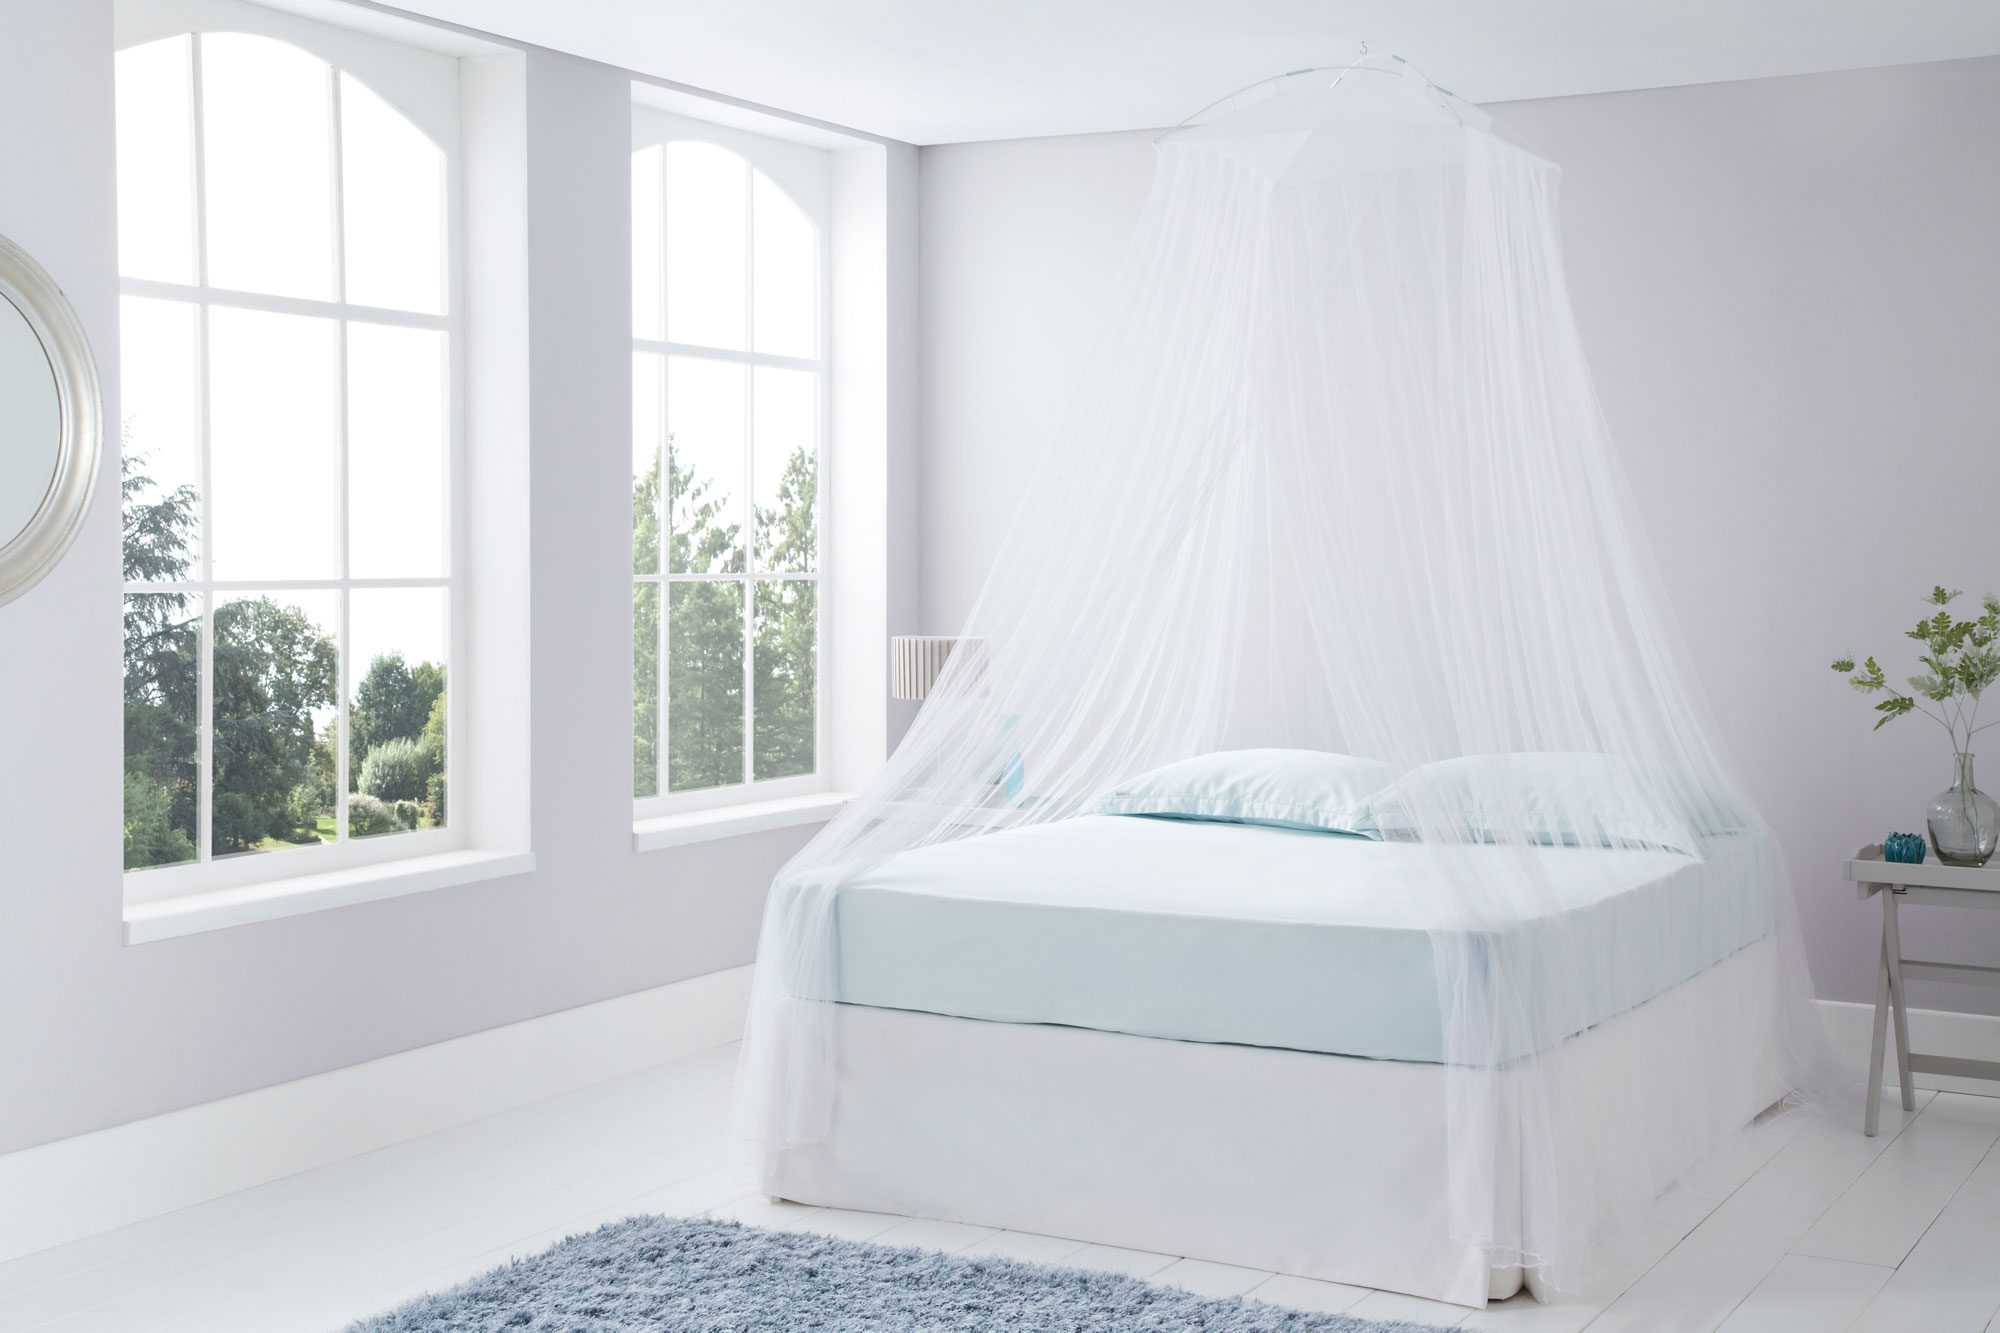 White Bed Canopy resort style white mosquito nets | mosquito nets online uk